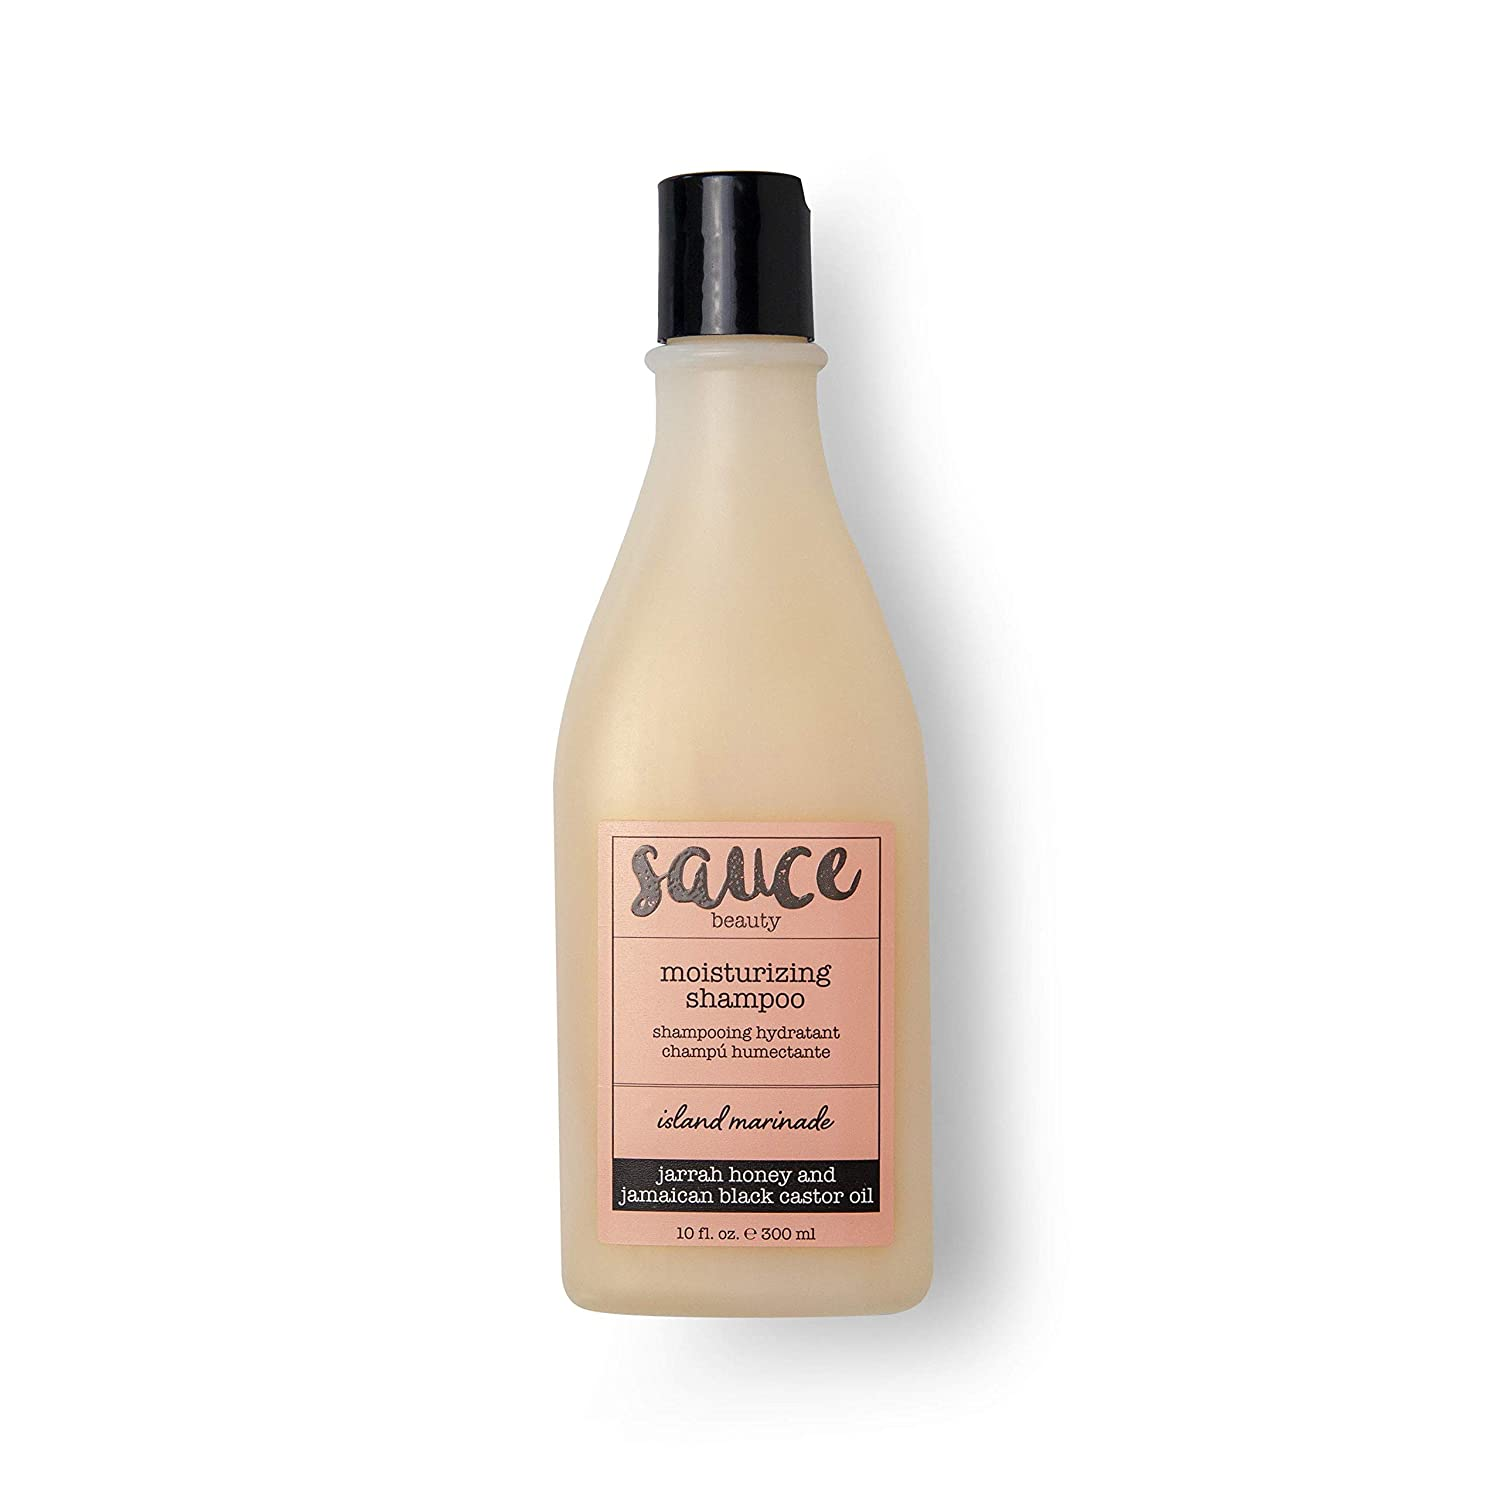 Island Marinade Moisturizing Shampoo with Coconut Milk, Jasmine & Honey that Soothes the Scalp & Adds Shine to Hair – Sulfate Free Shampoo with Argan & Castor Oils for Healthier, Stronger Hair